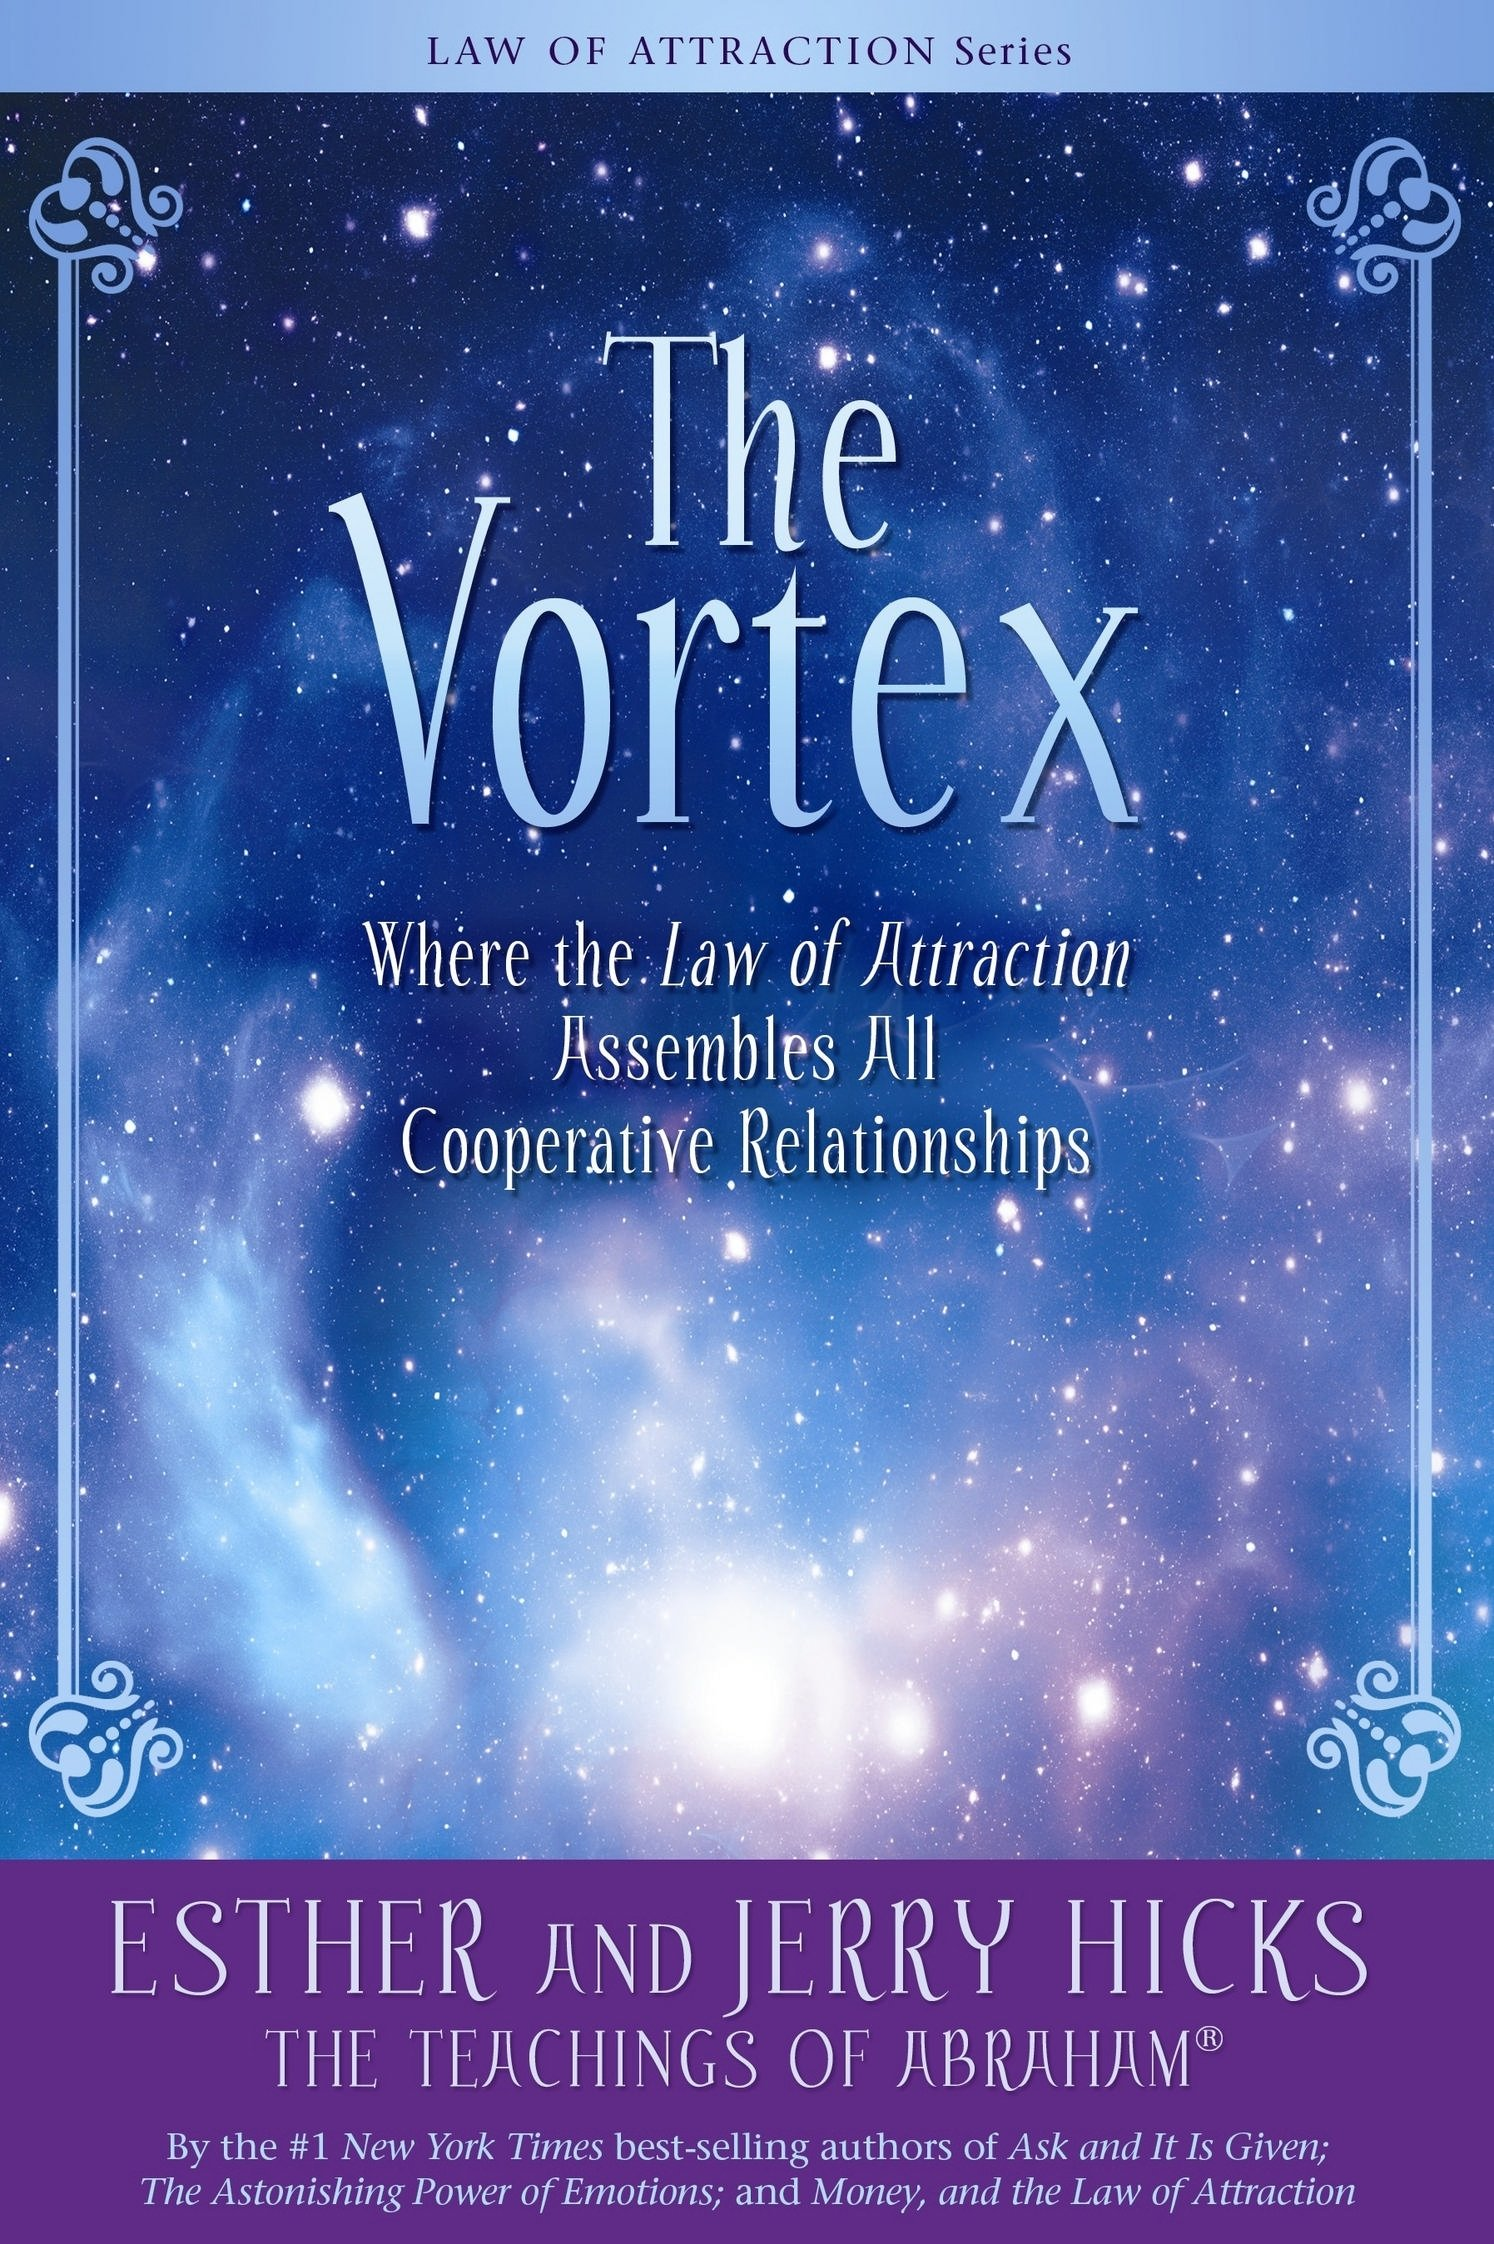 Vortex Attraction Assembles Cooperative Relationships product image